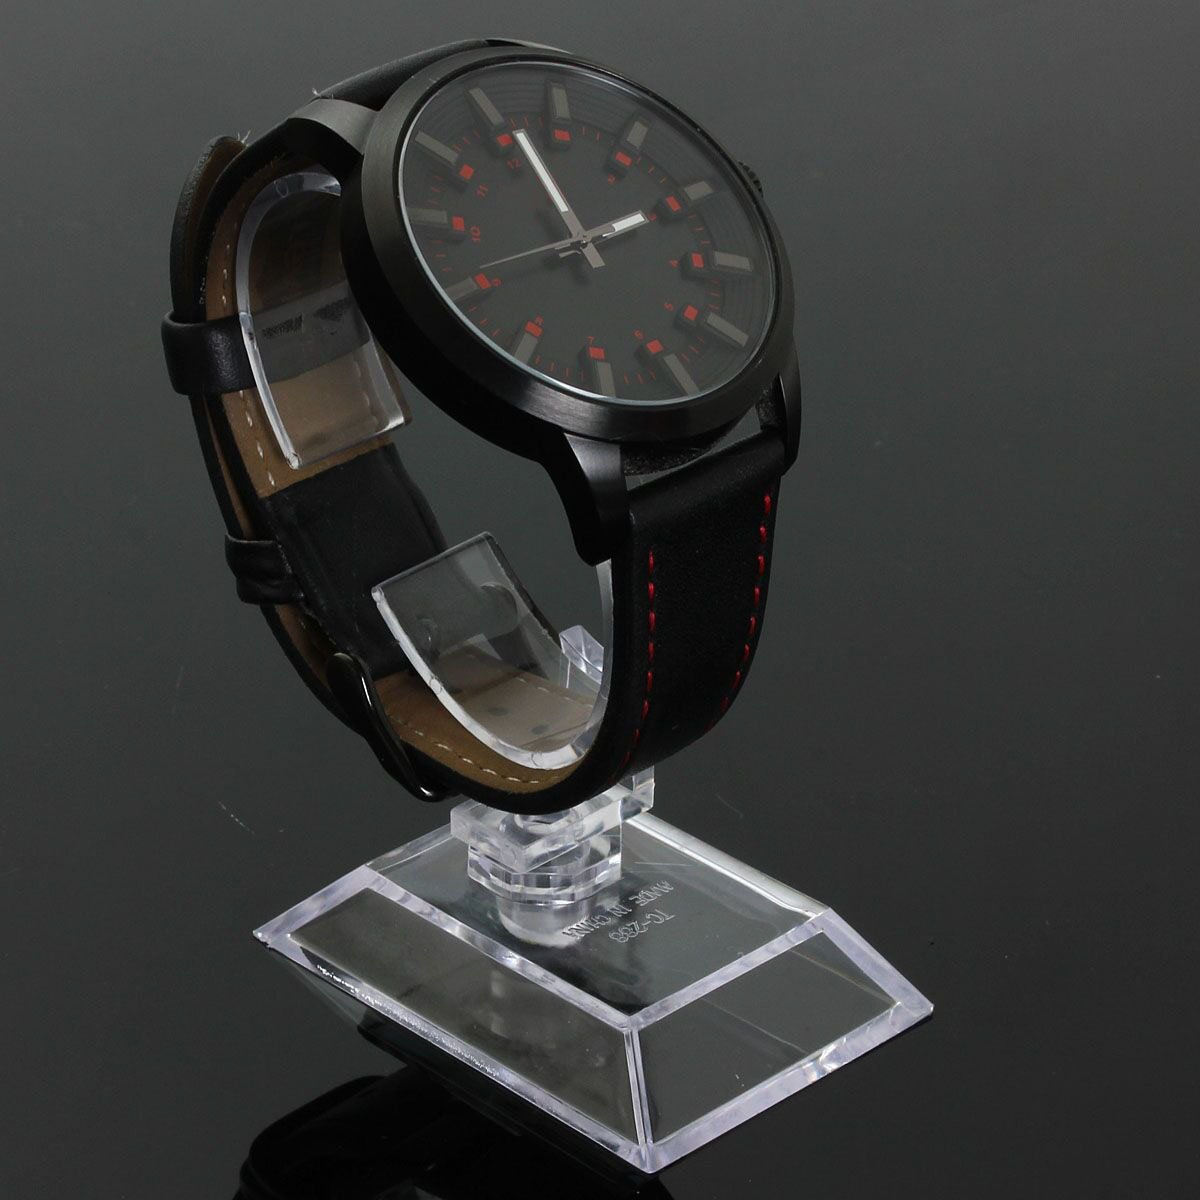 Quality Time Watches